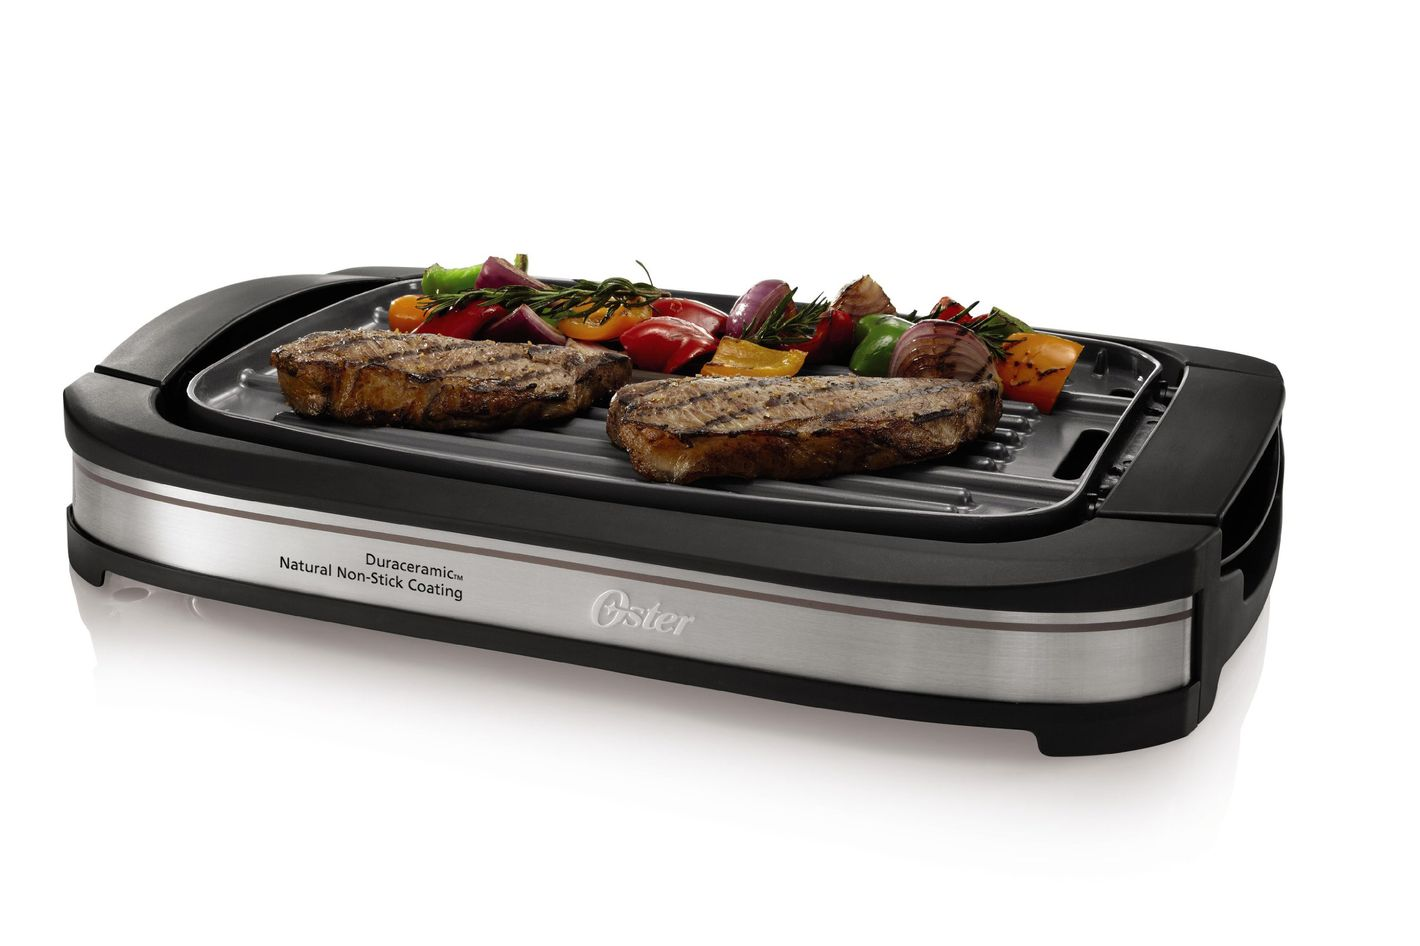 Oster CKSTGR3007-ECO DuraCeramic Reversible Grill and Griddle, Black